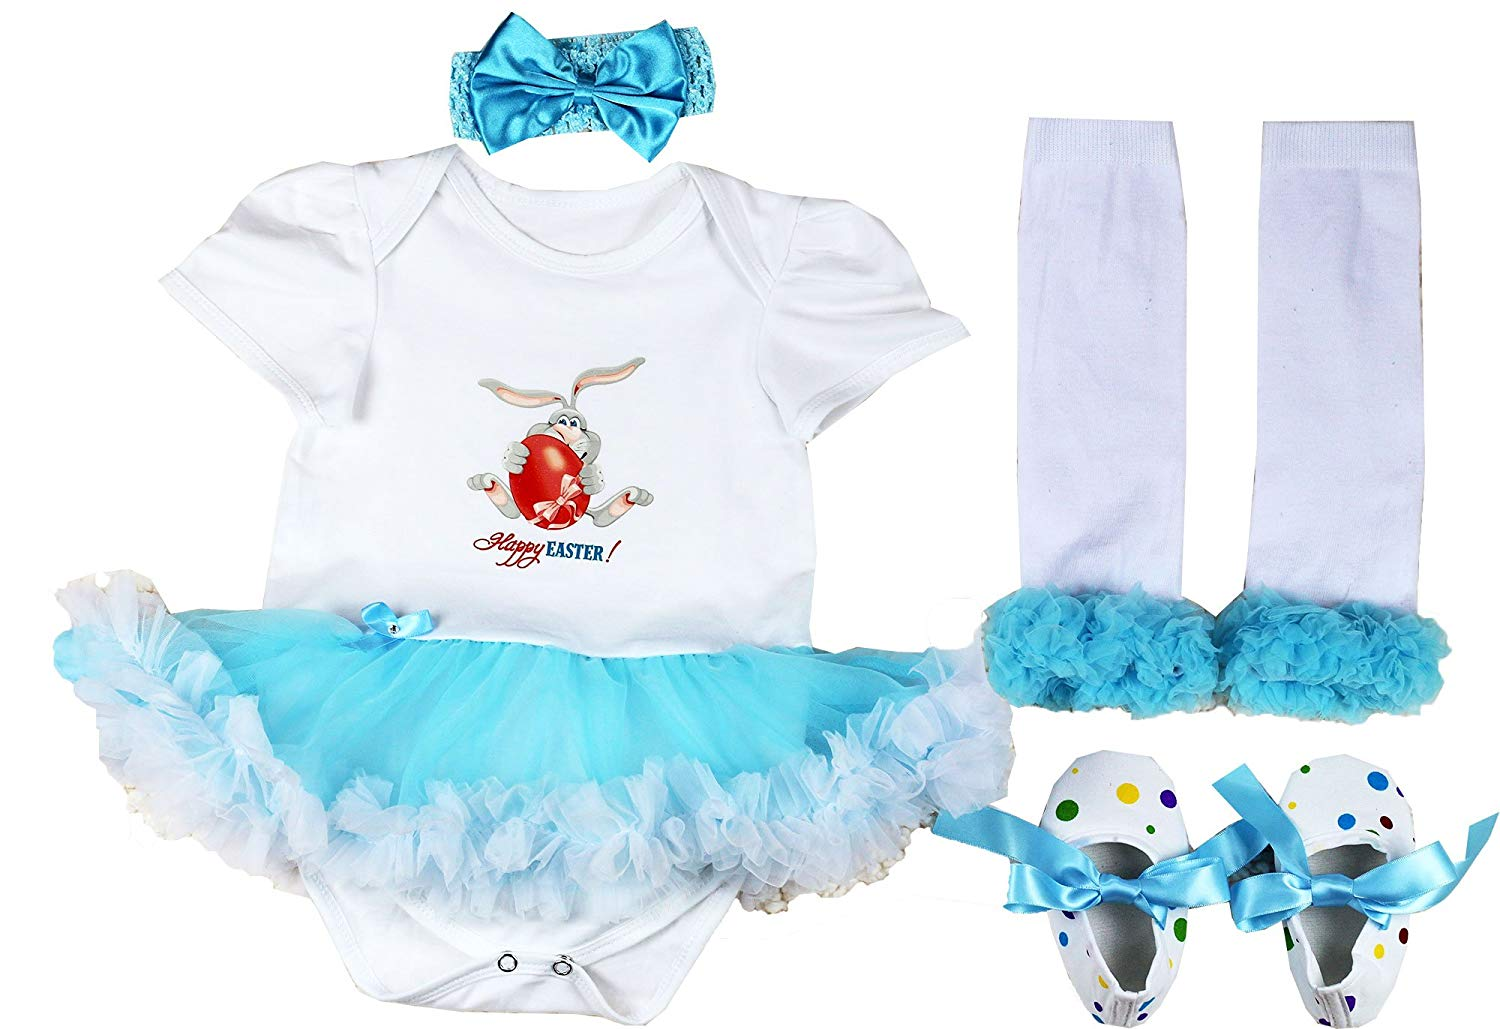 a8ca3ca8d Get Quotations · Baby Girls' 1st Easter Day Outfit Newborn Party Dress 4PCS  ...